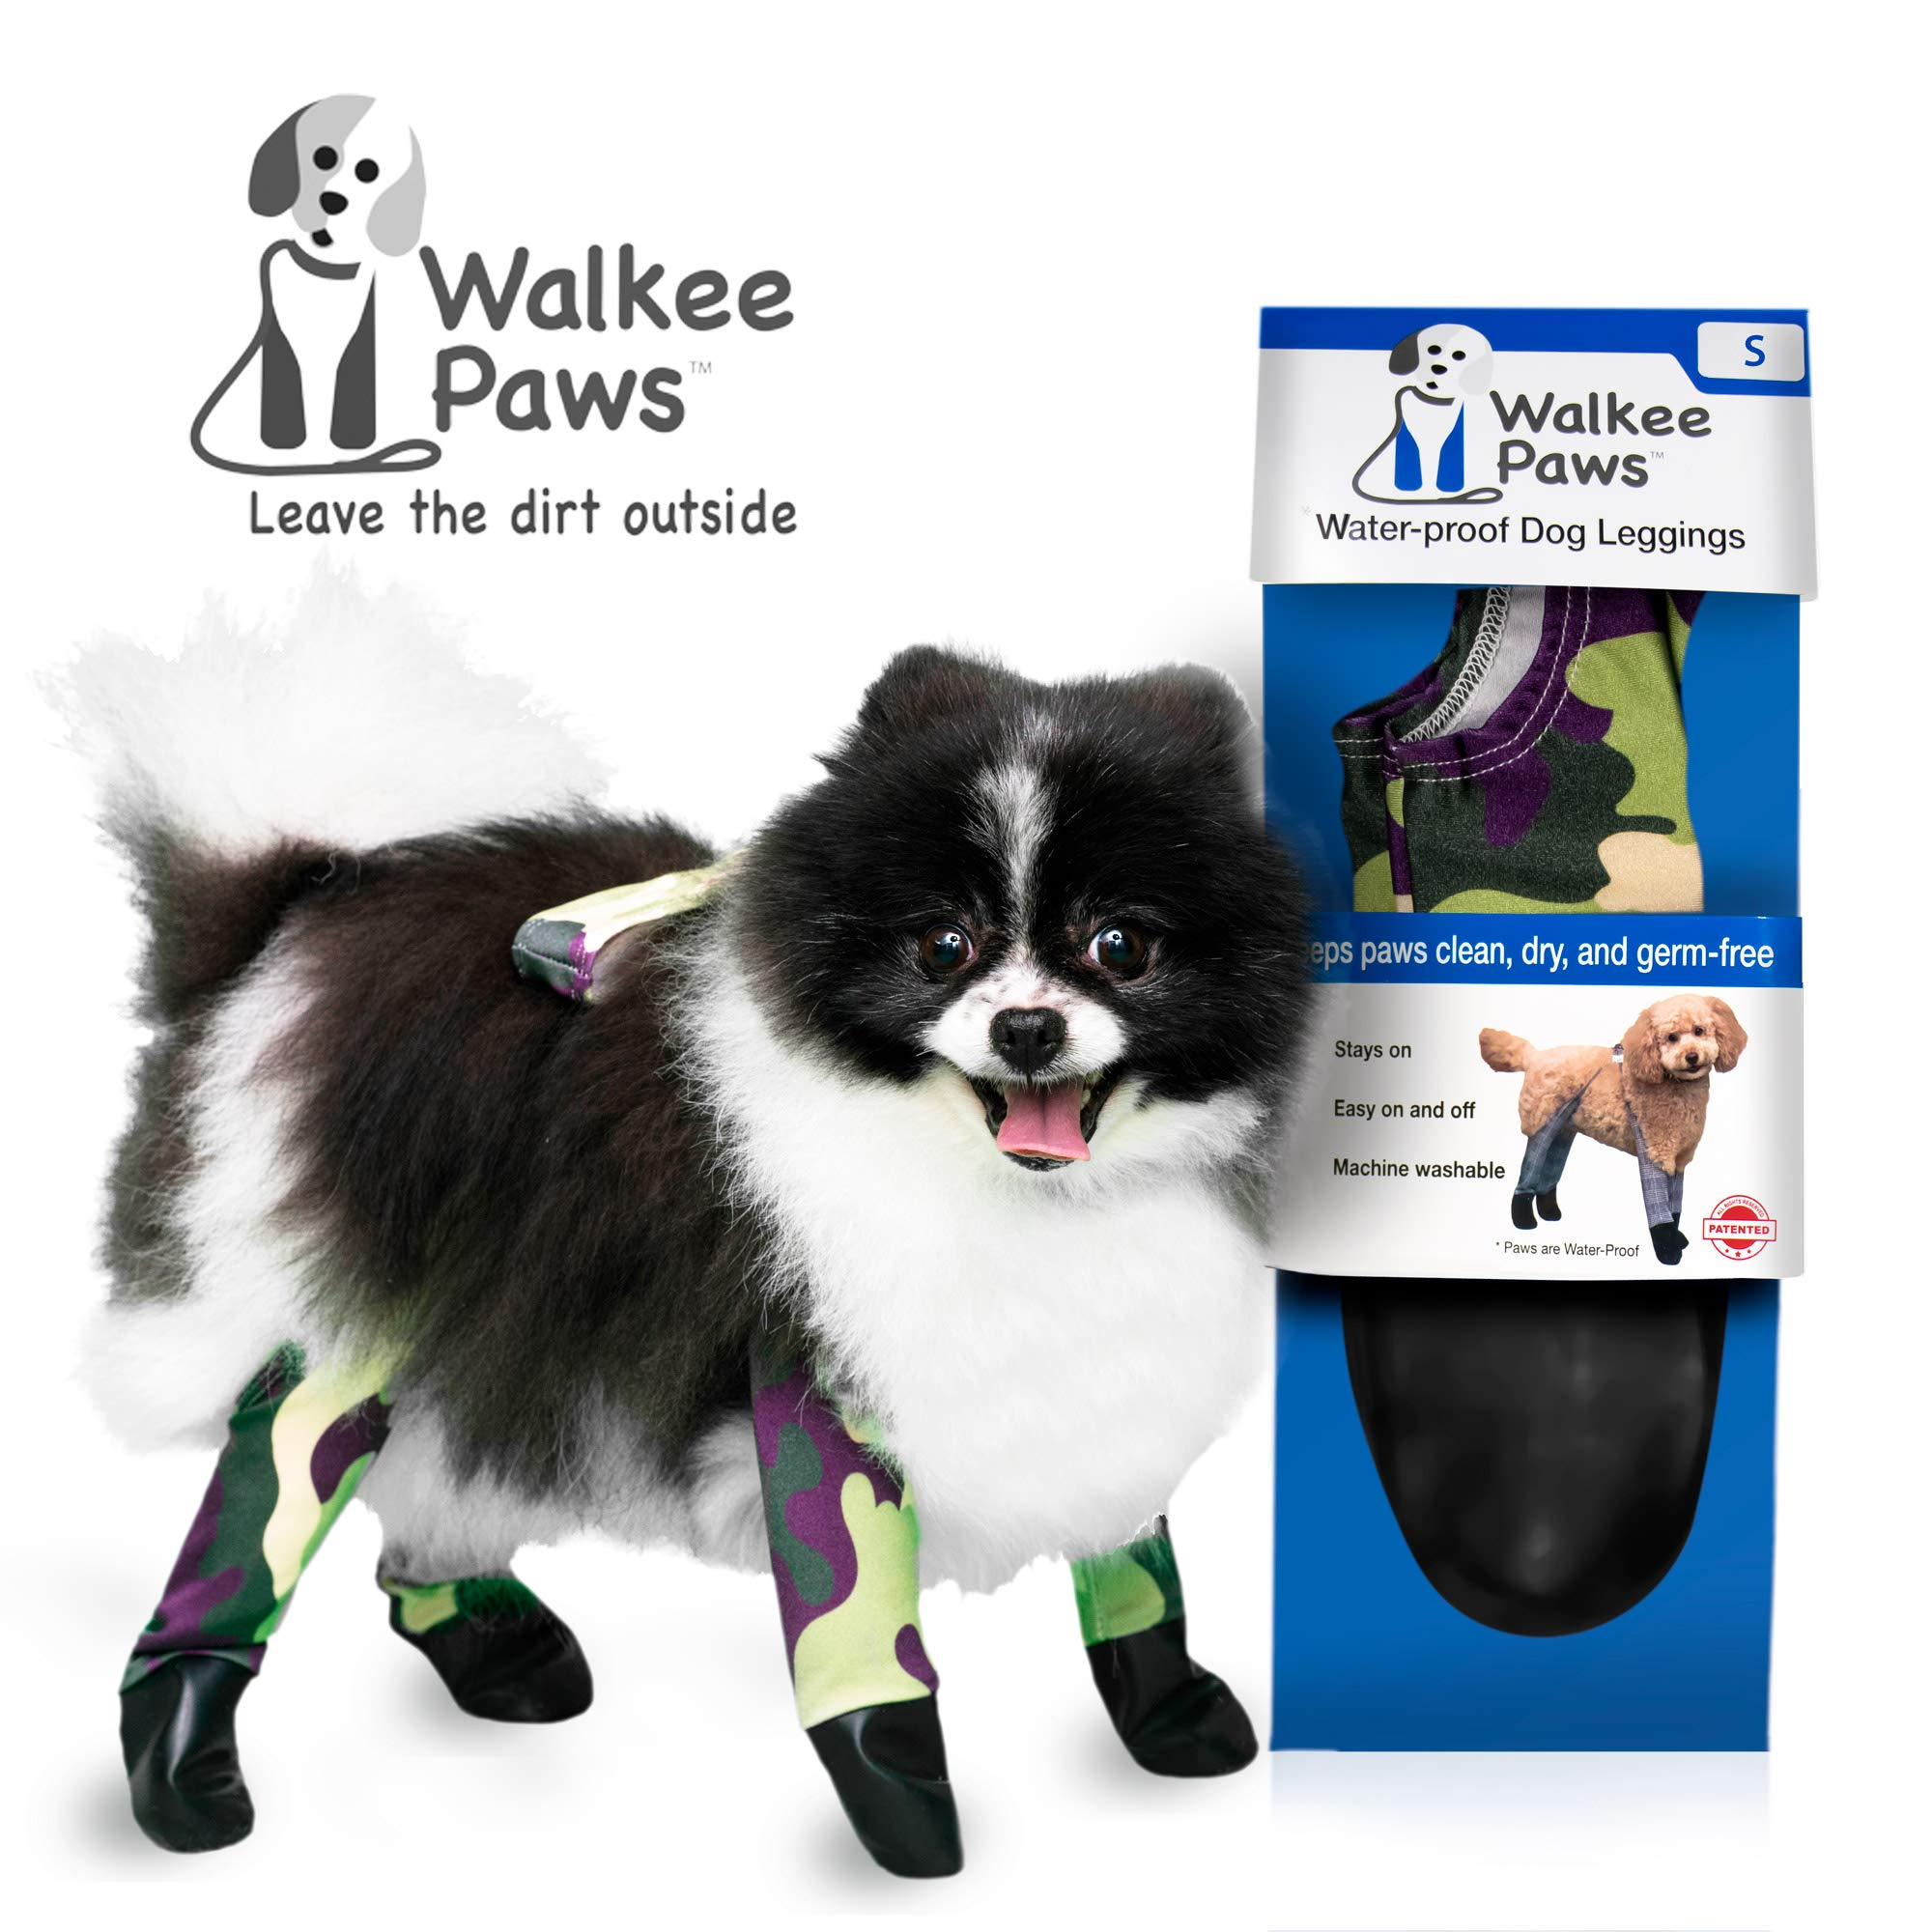 Walkee Paws Waterproof Dog Leggings - Keep Your Dog's' Clean & Dry Without The Hassle of Boots - Camouflage (Small) by Walkee Paws